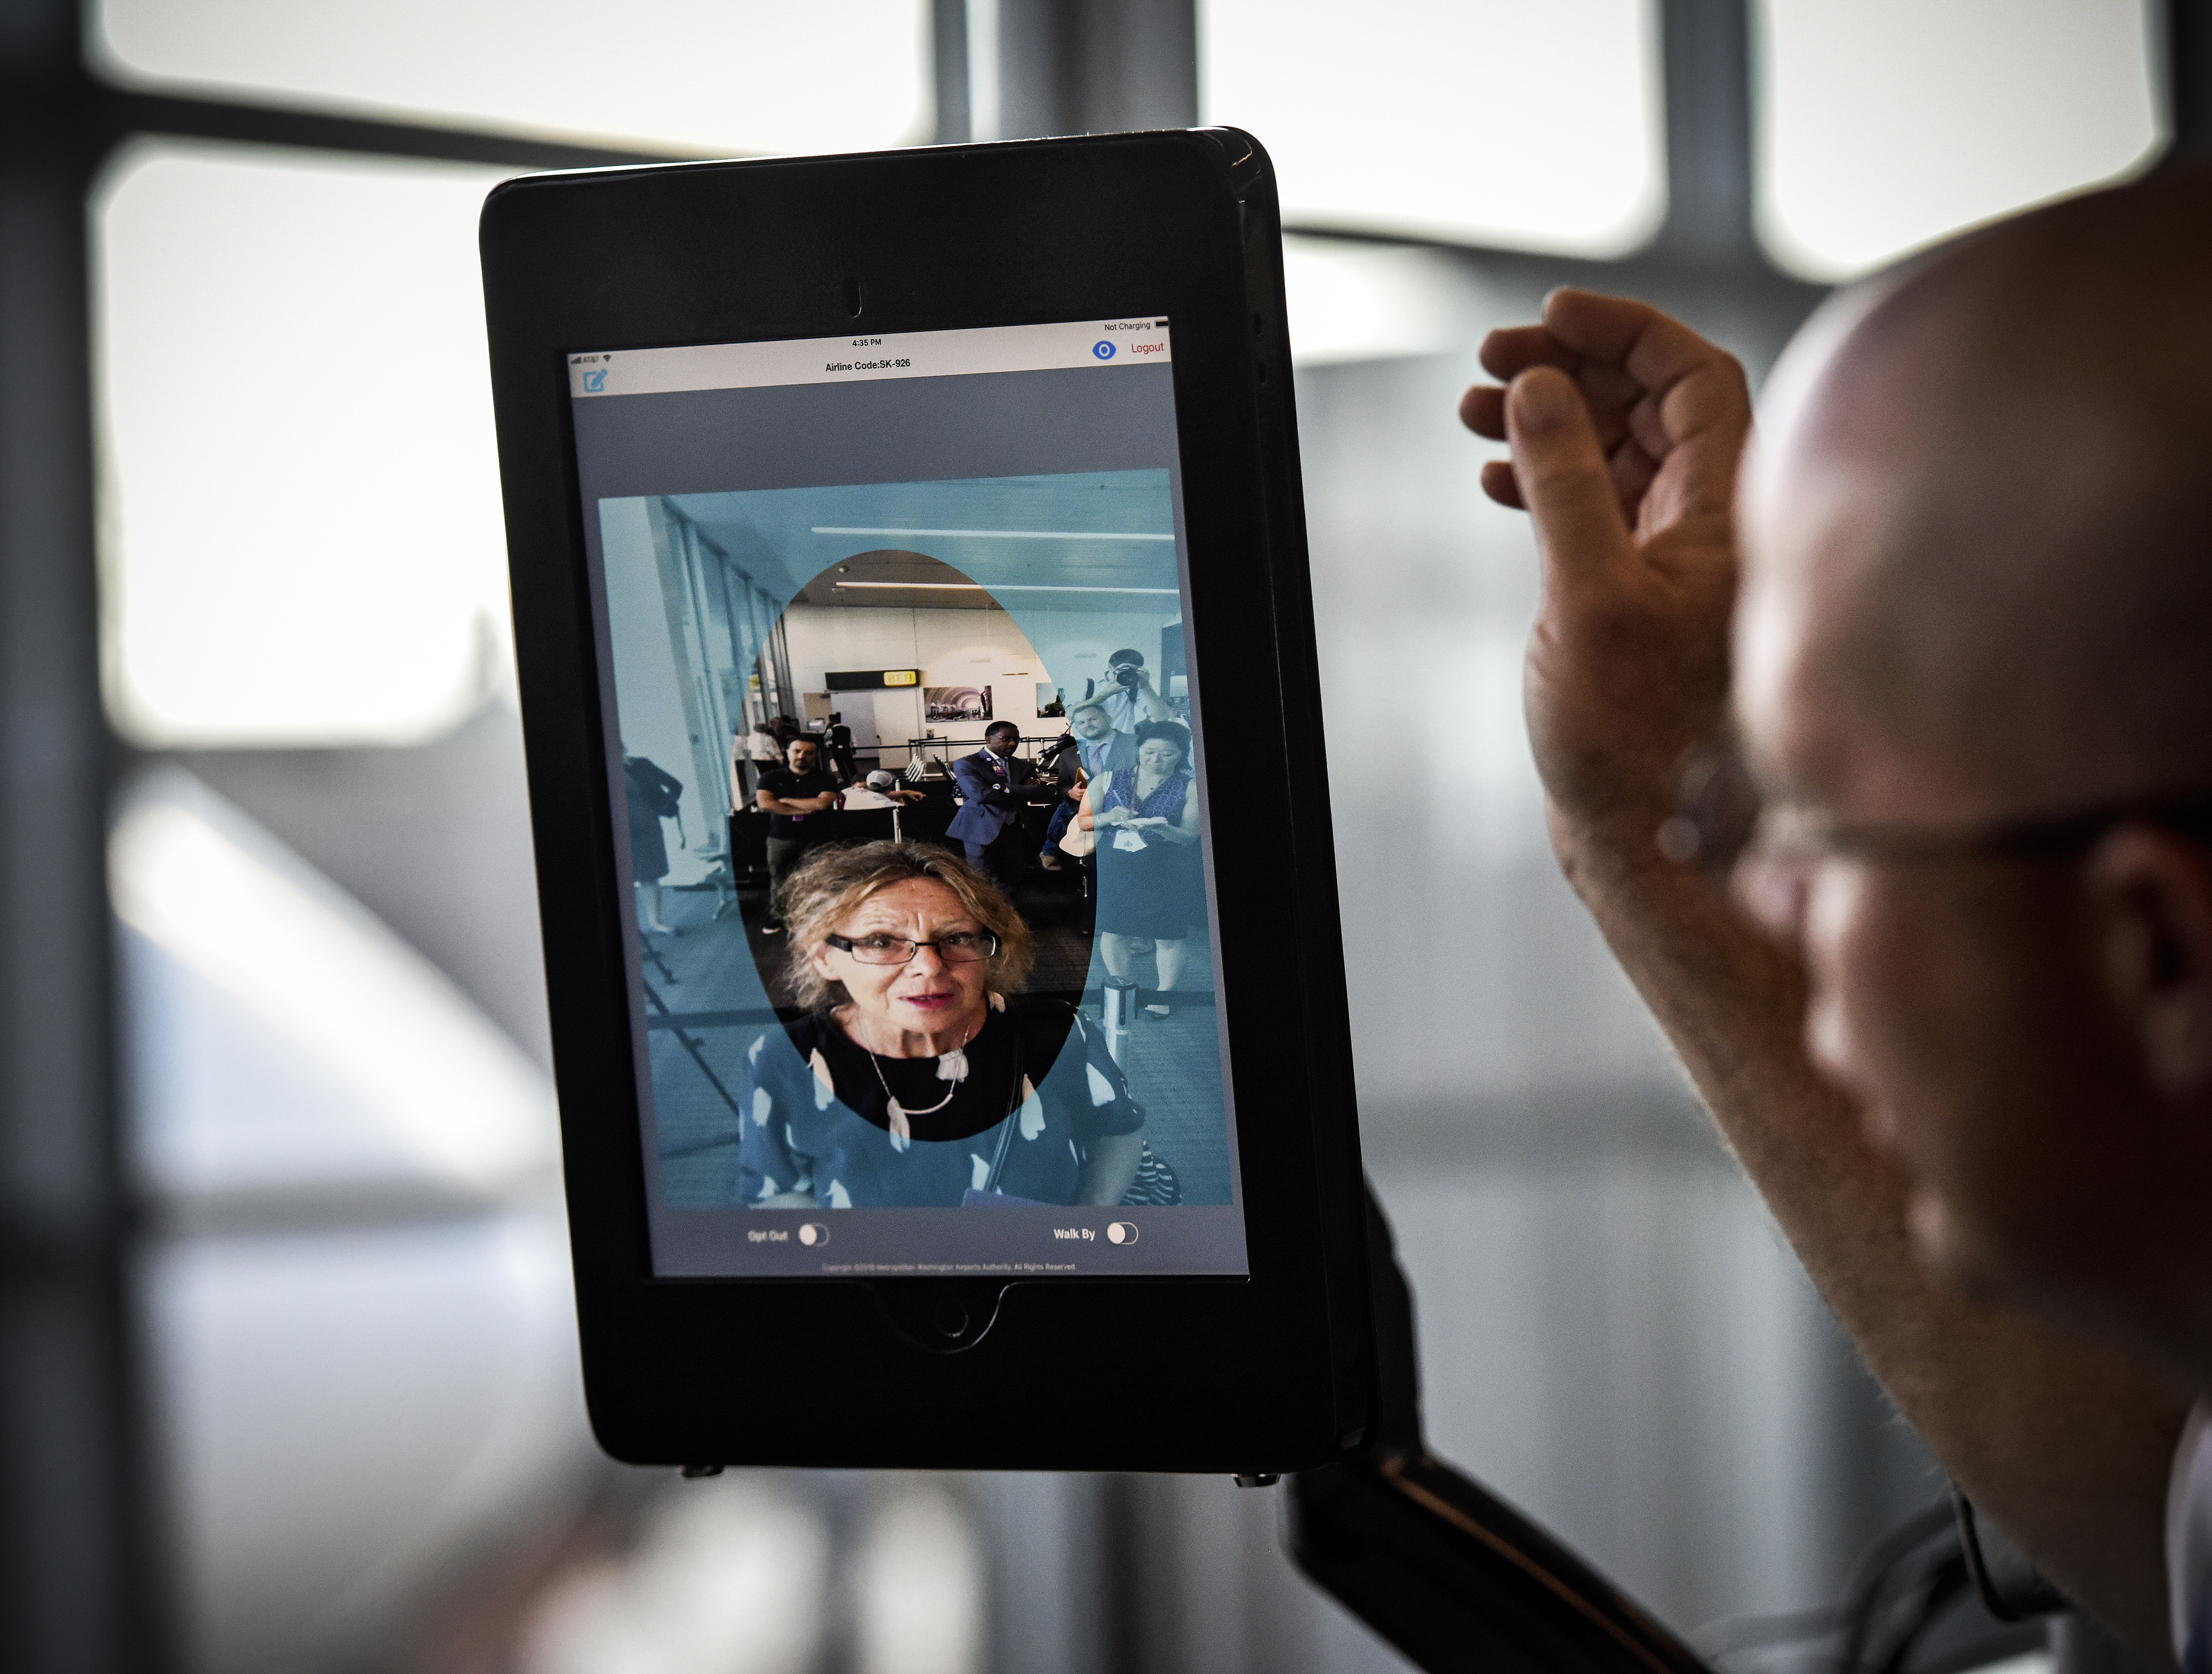 A man looks at a screen that is trying to recognize his facial features.